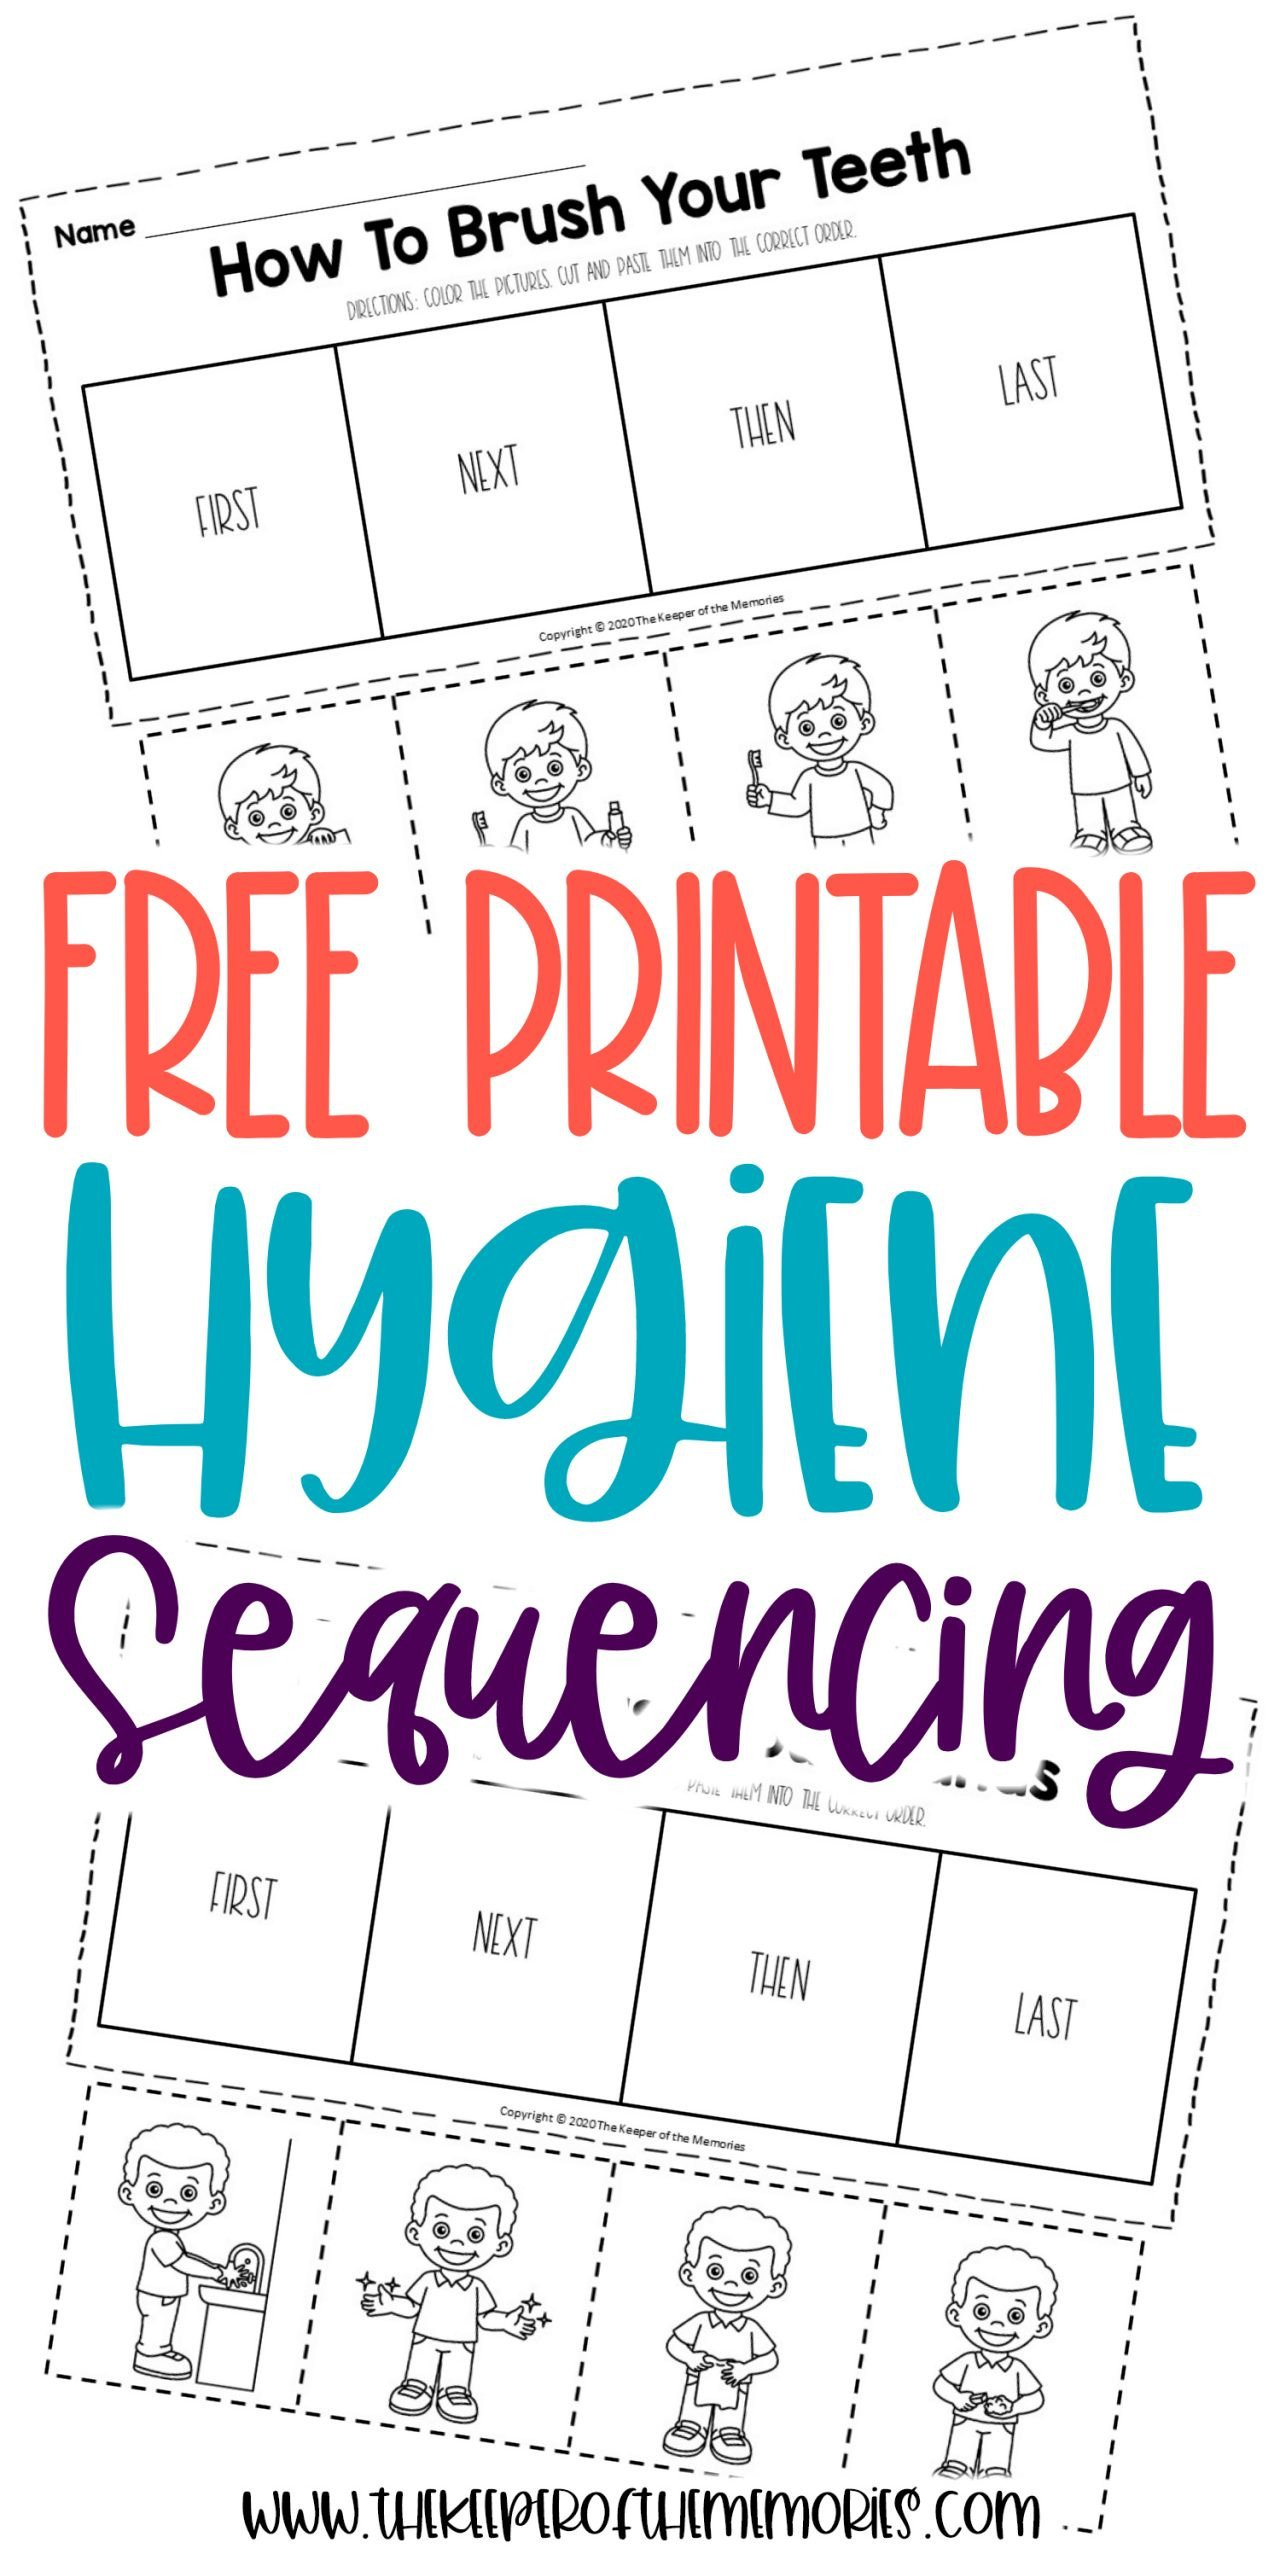 Cut and Paste Sequencing Worksheets Free Printable Preschool Sequencing Worksheets